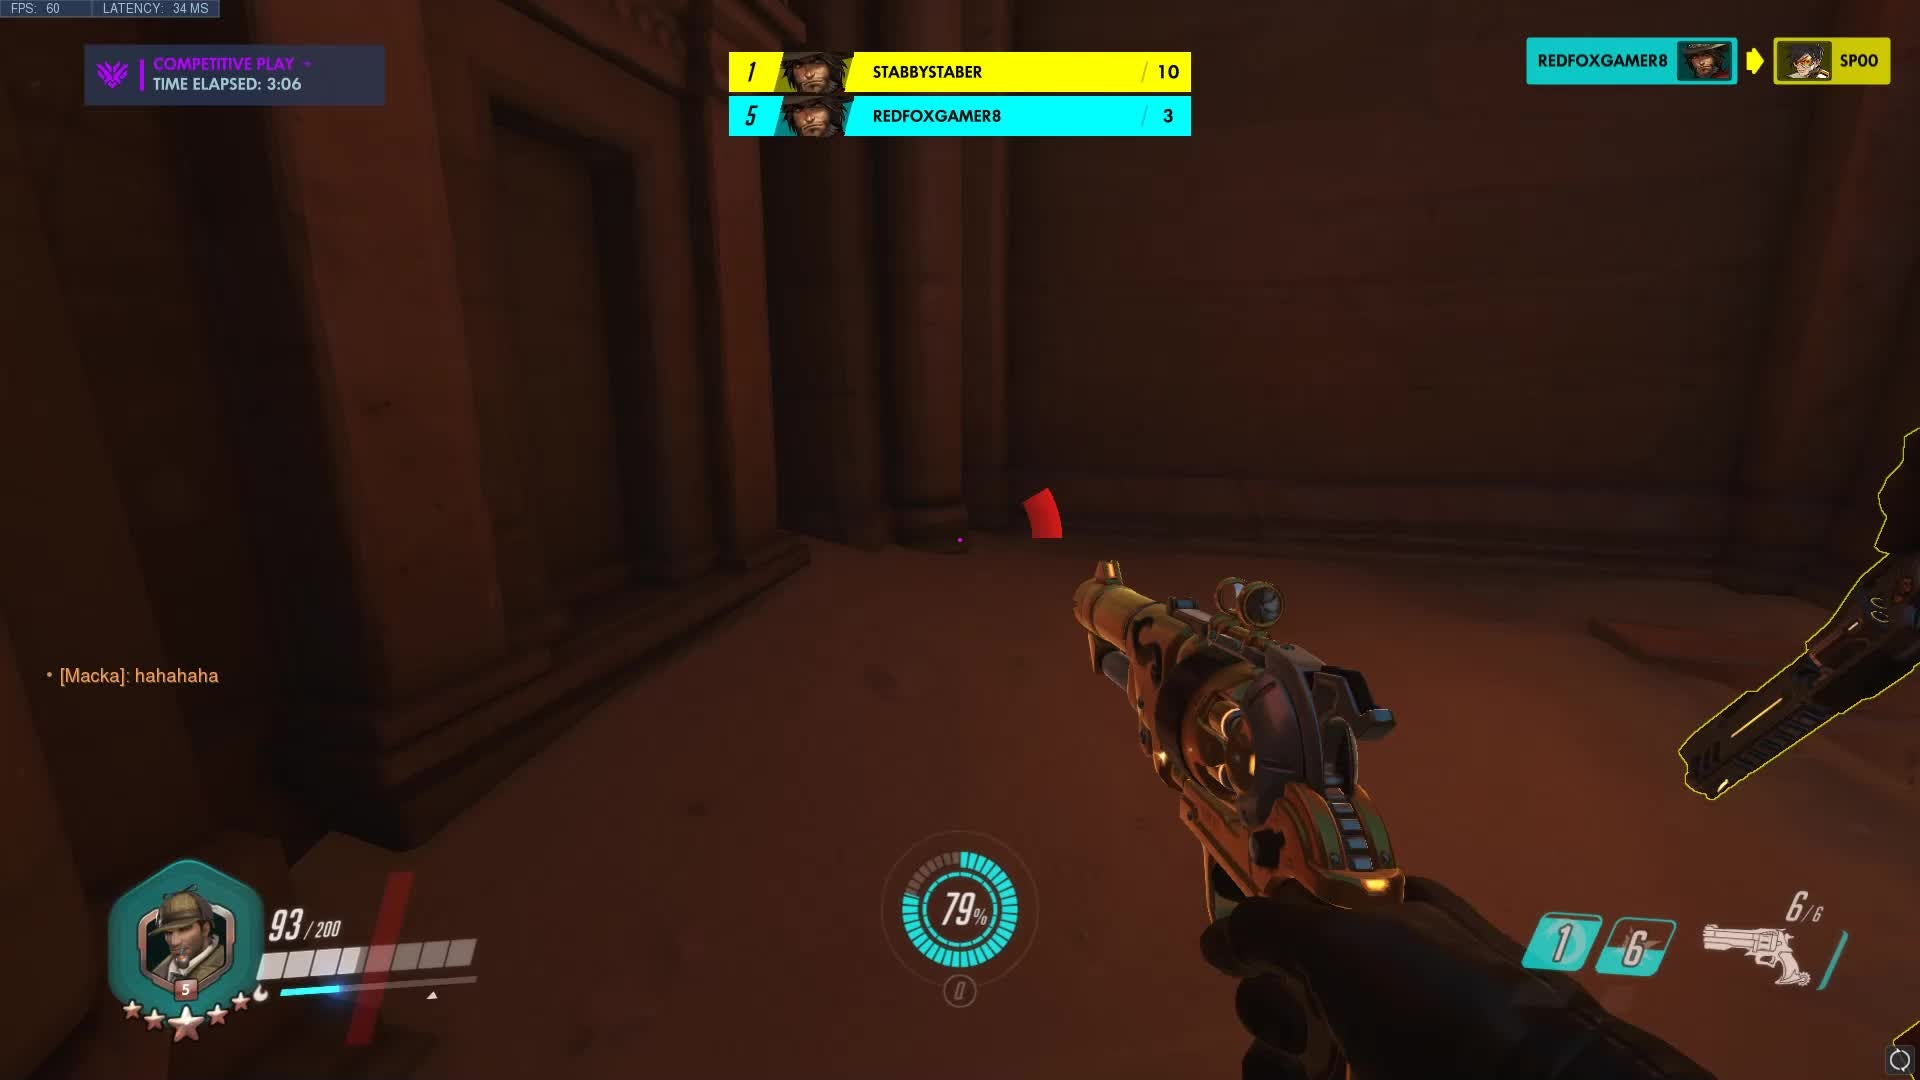 Overwatch: General - Just chilling in deathmatch. video cover image 1